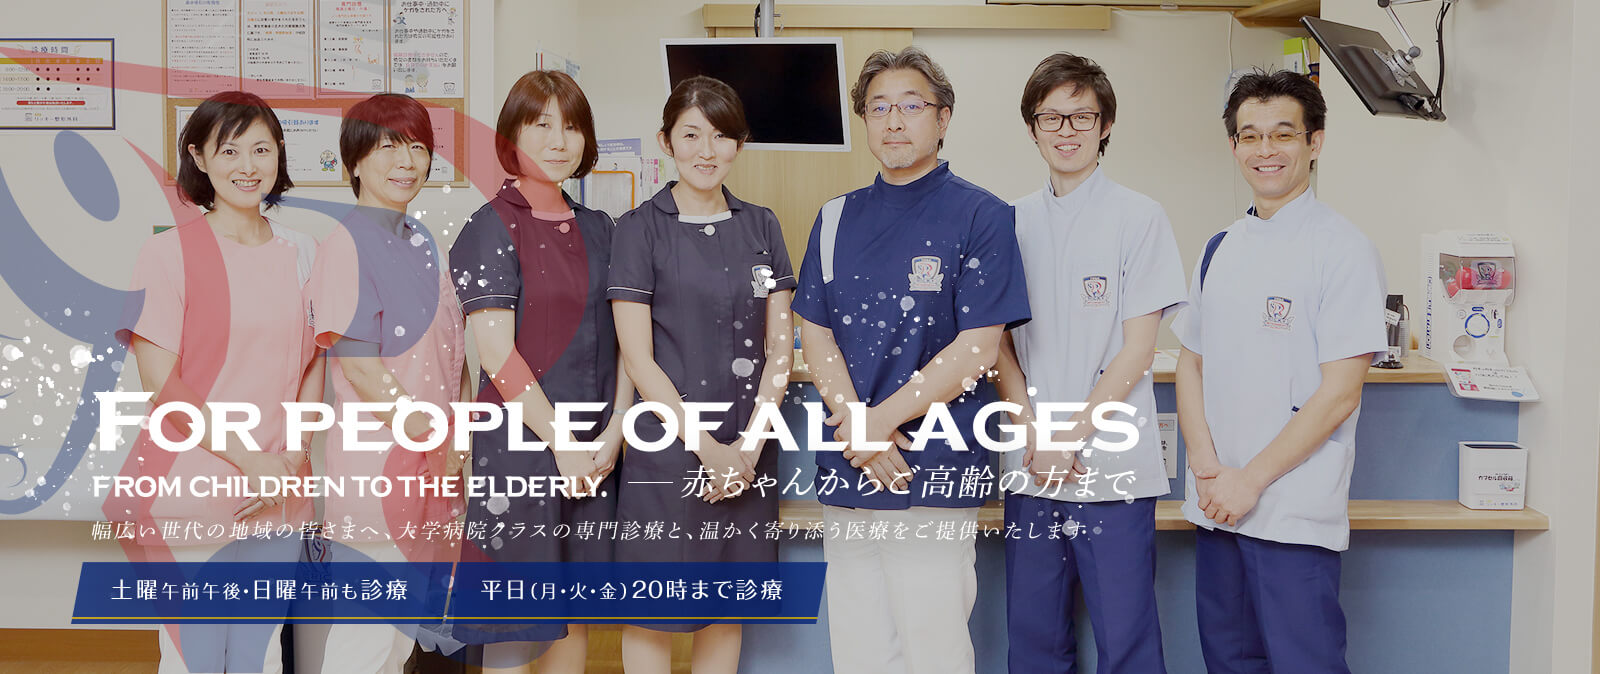 For people of all ages, from children to the elderly. 赤ちゃんからご高齢の方まで